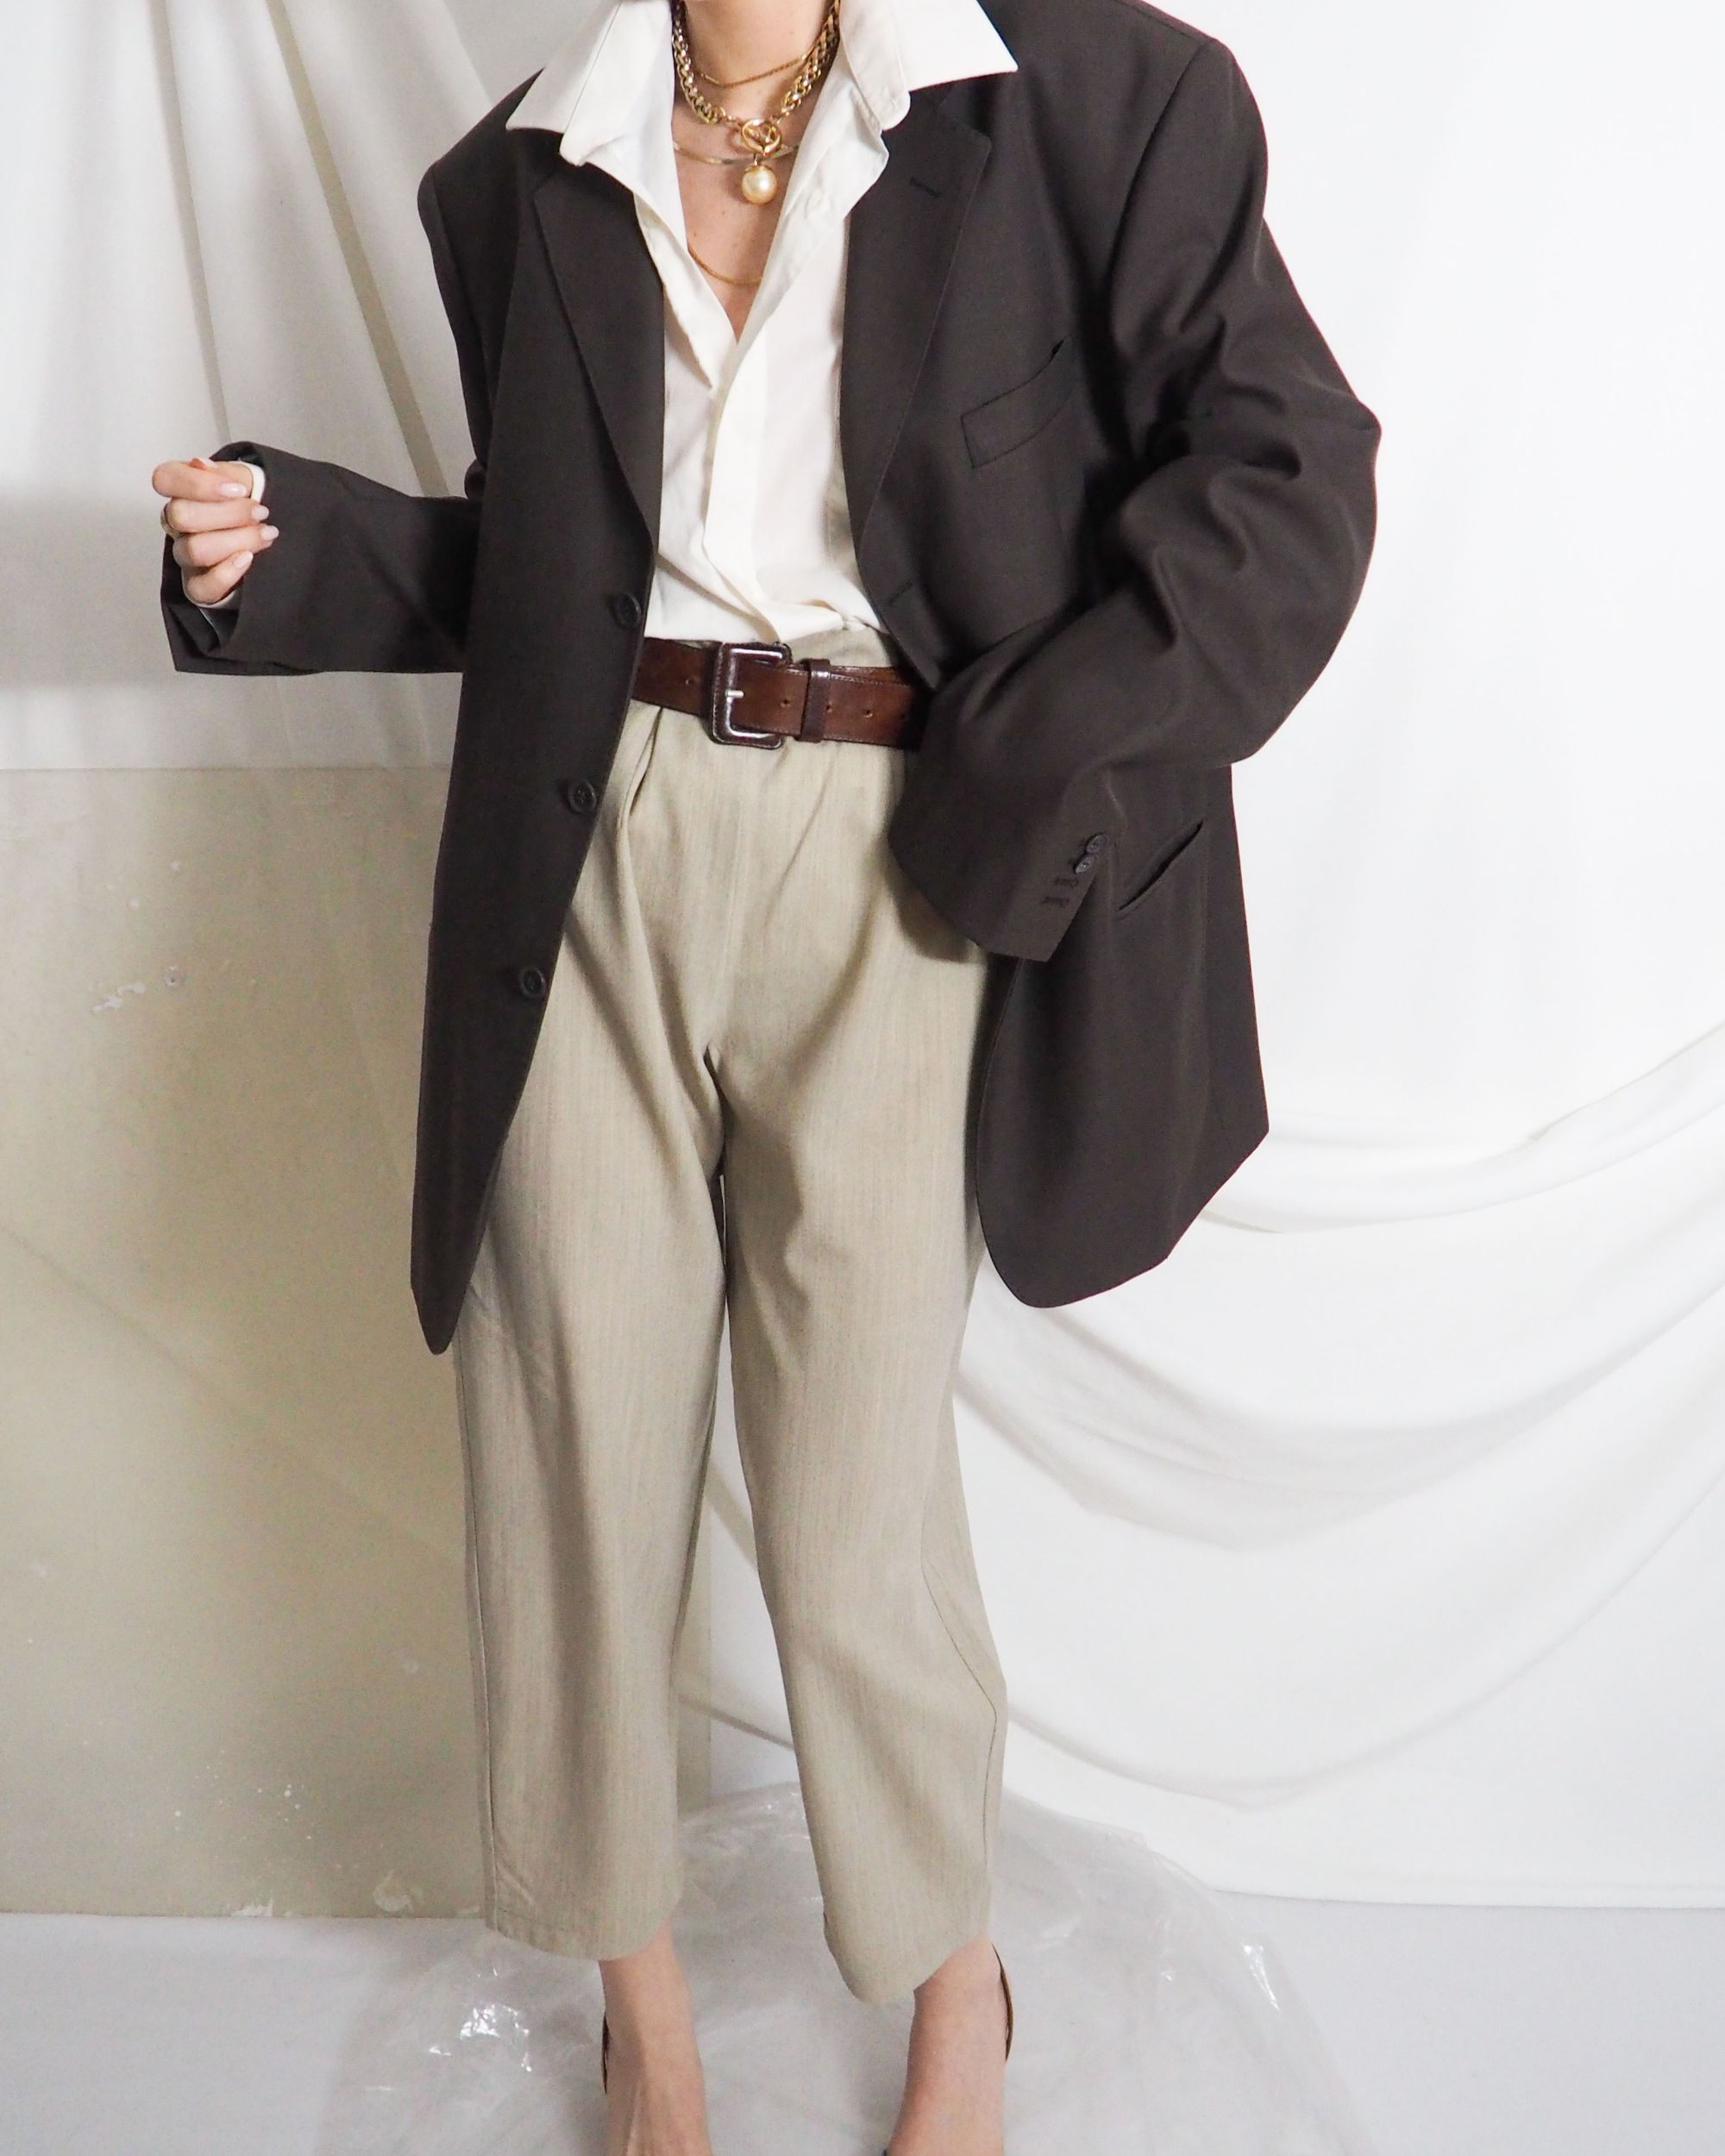 Vintage Oversized Dark Brown Blazer With Sand Wool Trousers And Buckle Belt Untitled 1991 In 2020 Vintage Clothing Online Vintage Outfits Online Shopping Clothes